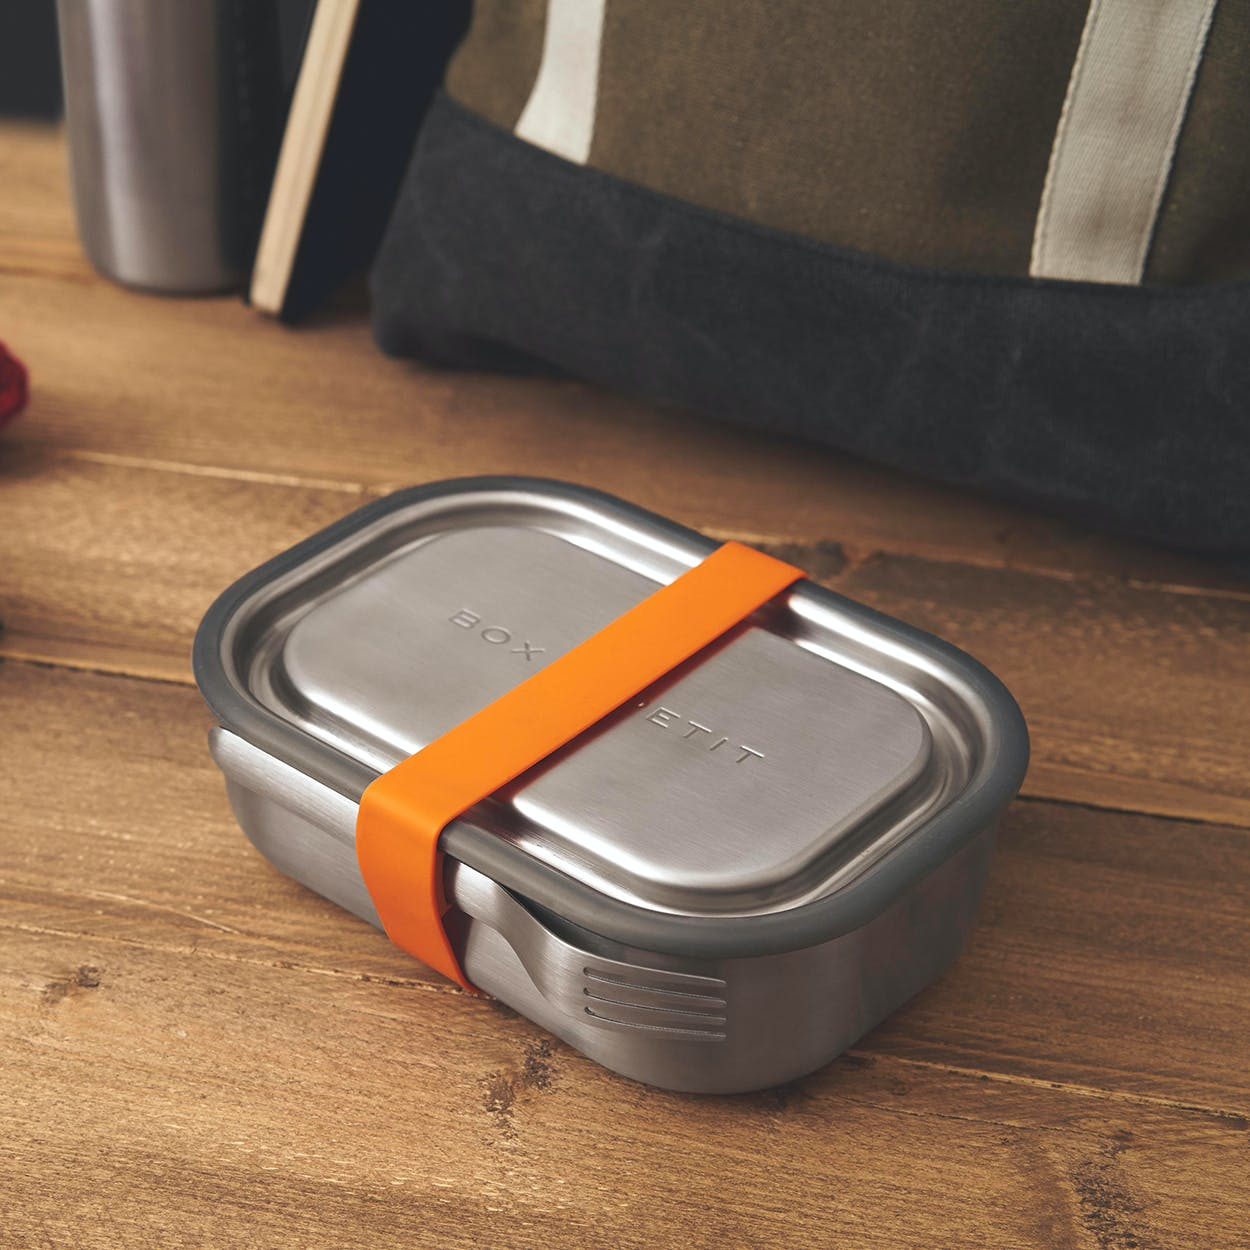 Stainless Steel Lunch Box - Orange